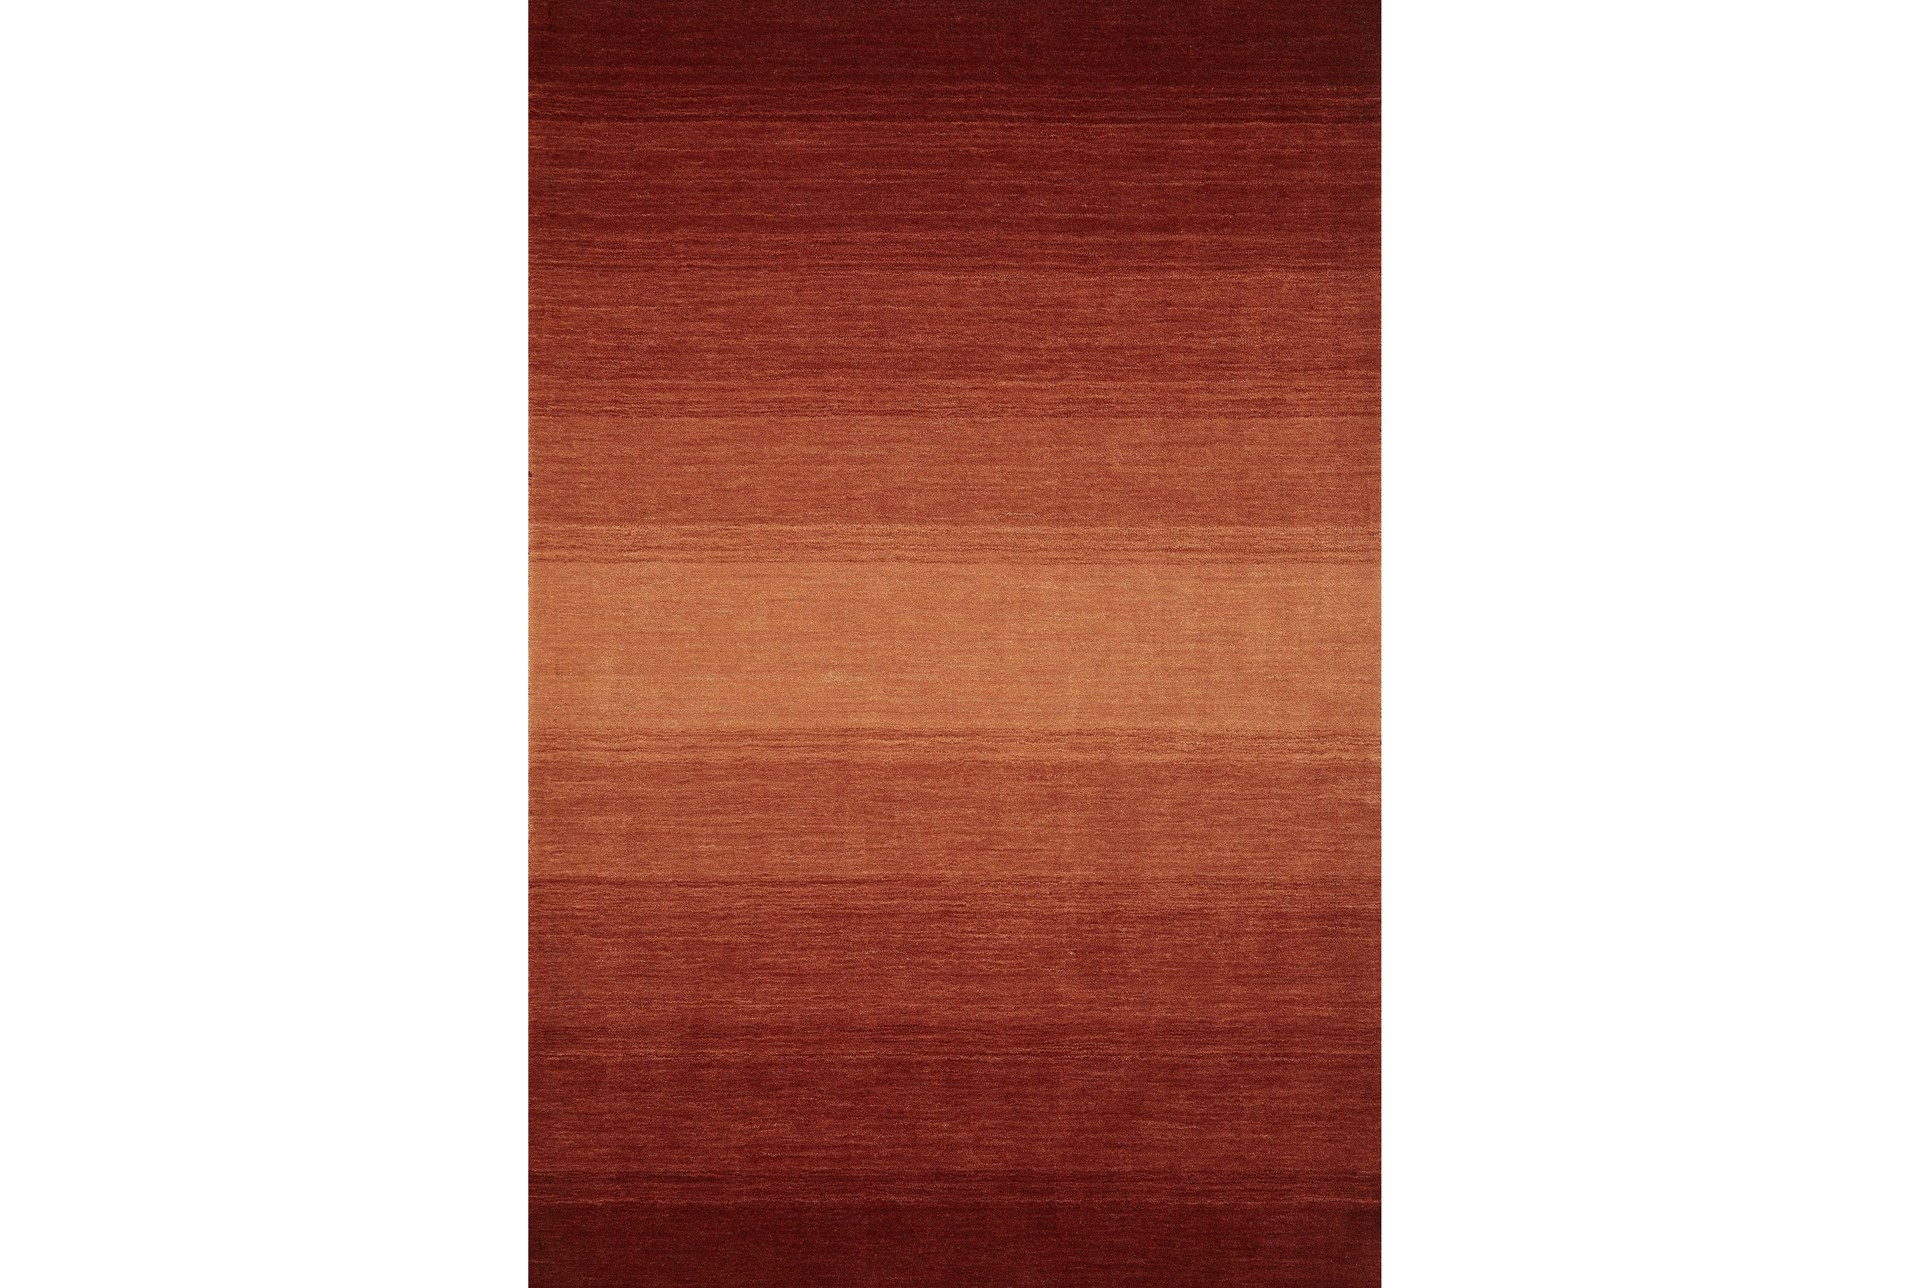 60x87 Rug Ombre Sunset Qty 1 Has Been Successfully Added To Your Cart